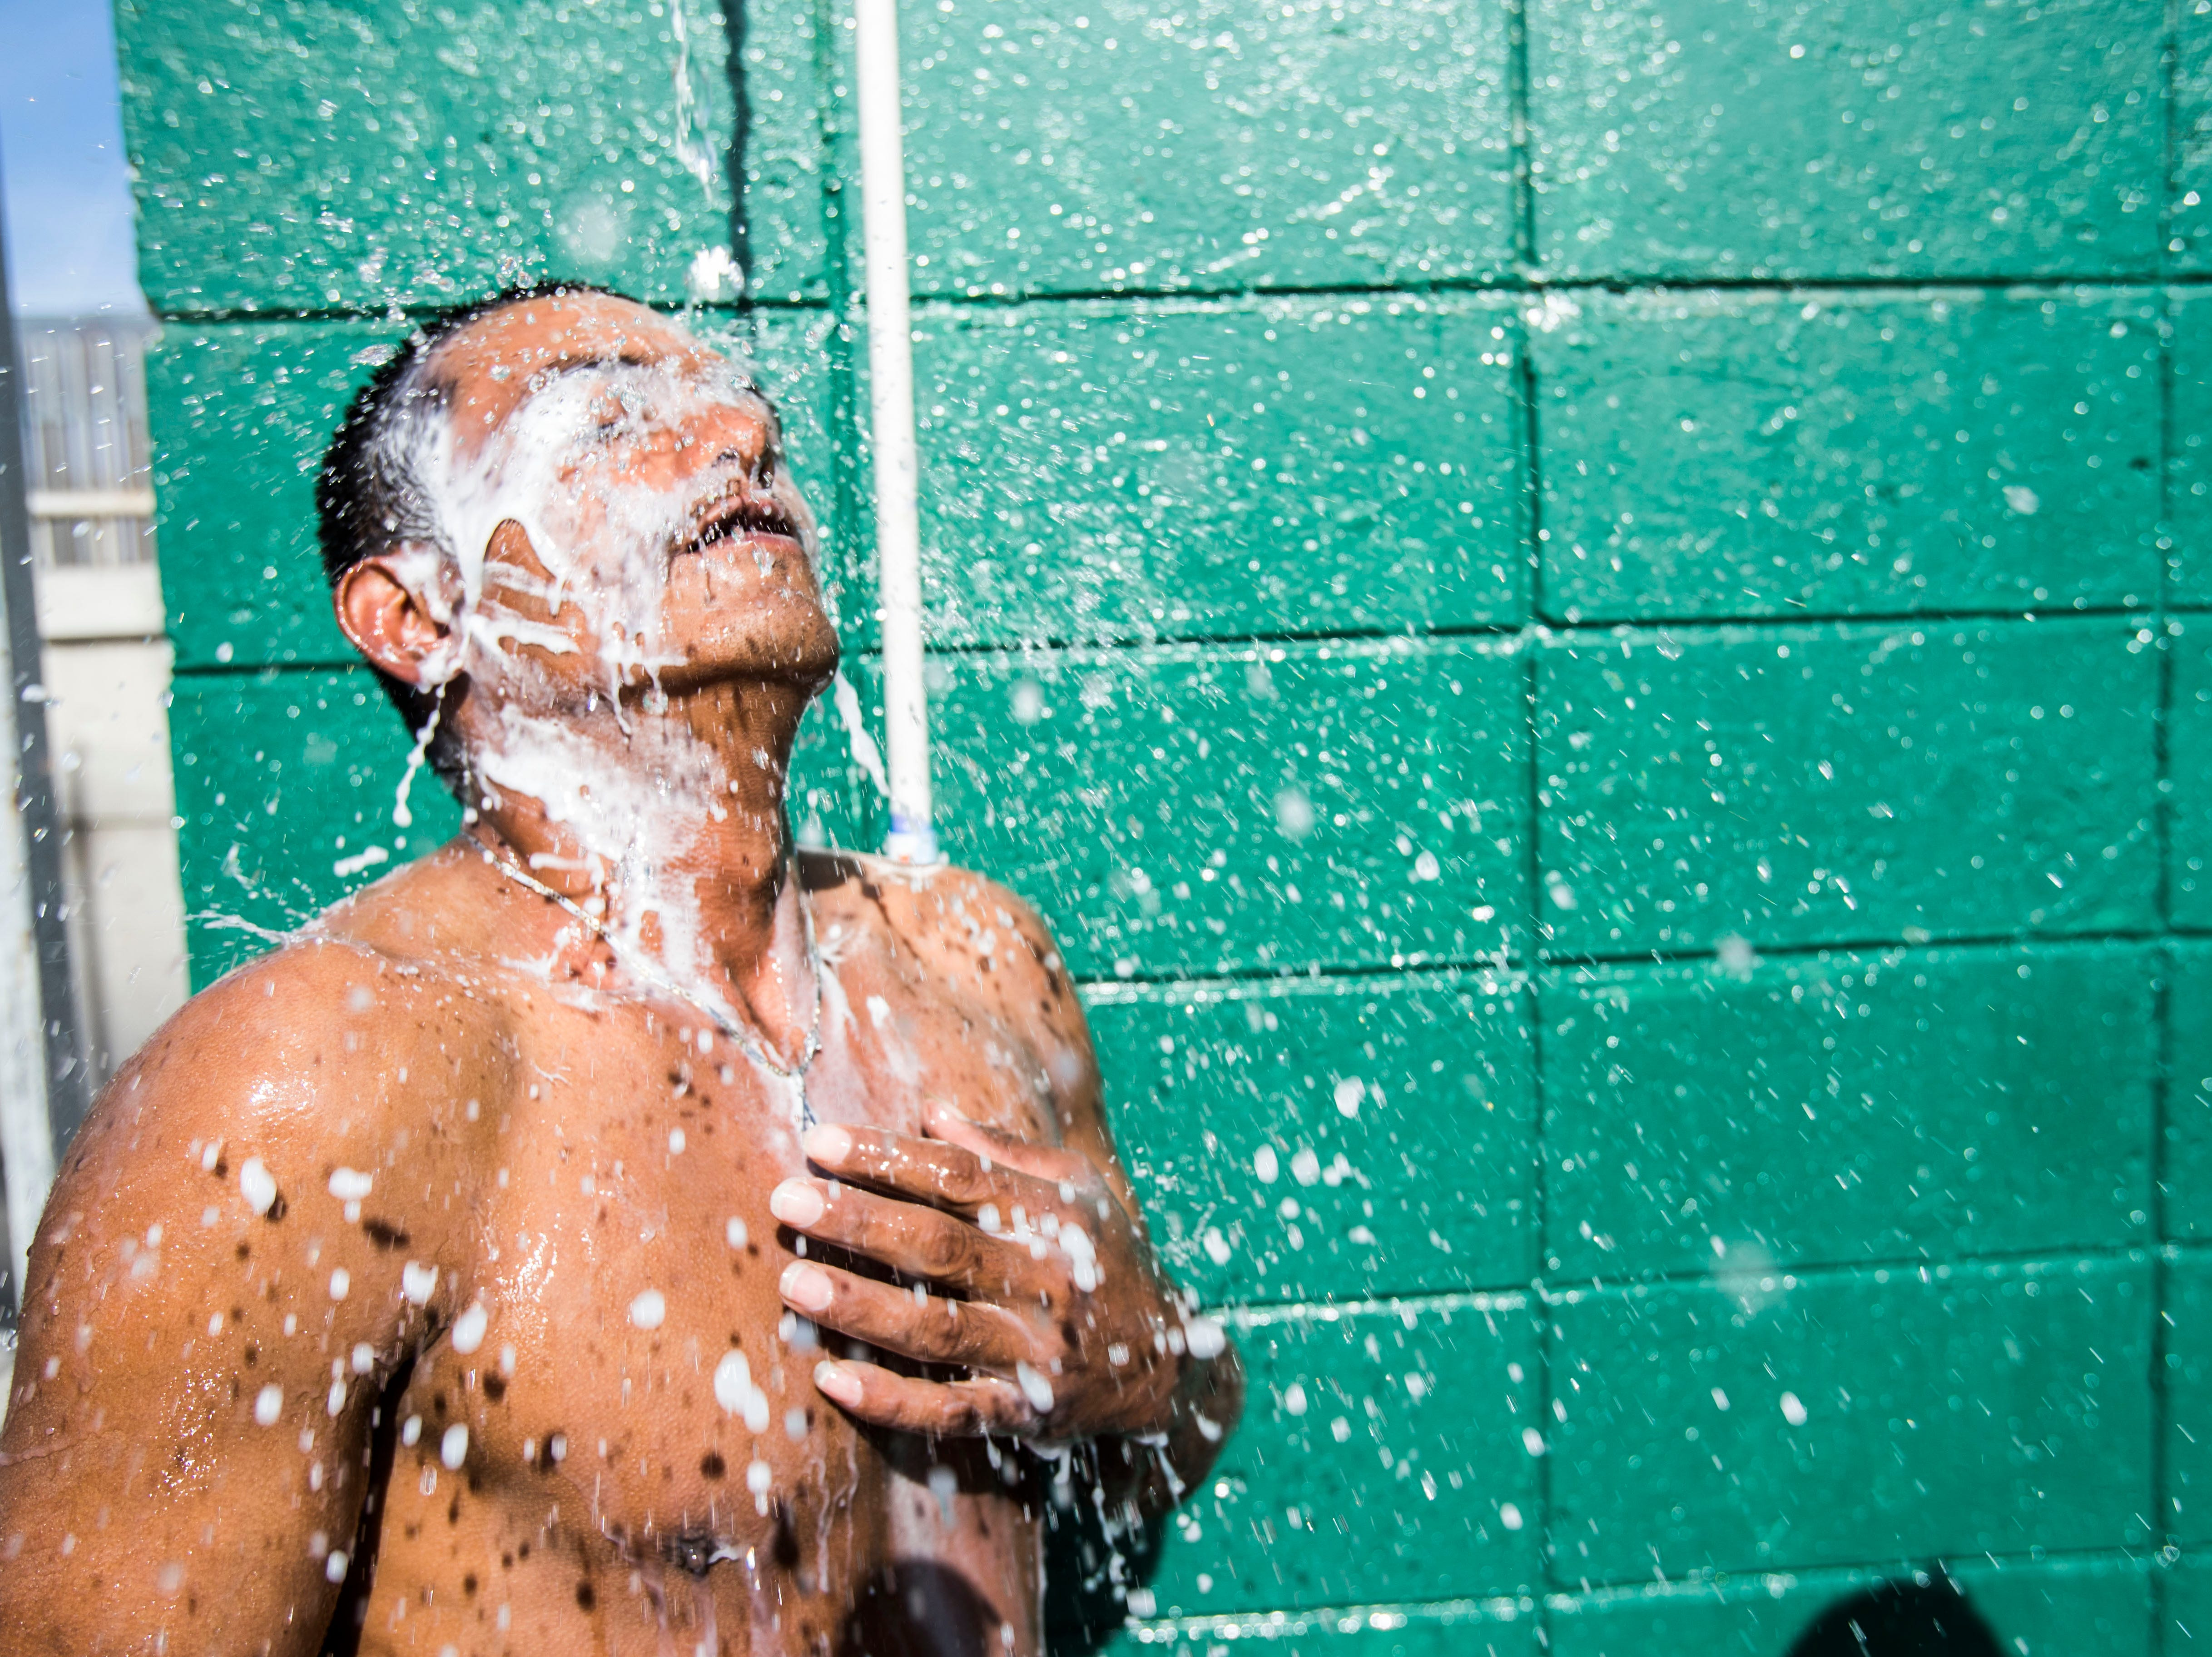 Migrants who had not bathe in days quickly take advantage of water running through makeshift pipes in the Benito Juarez sports complex in Tijuana, Mexico.